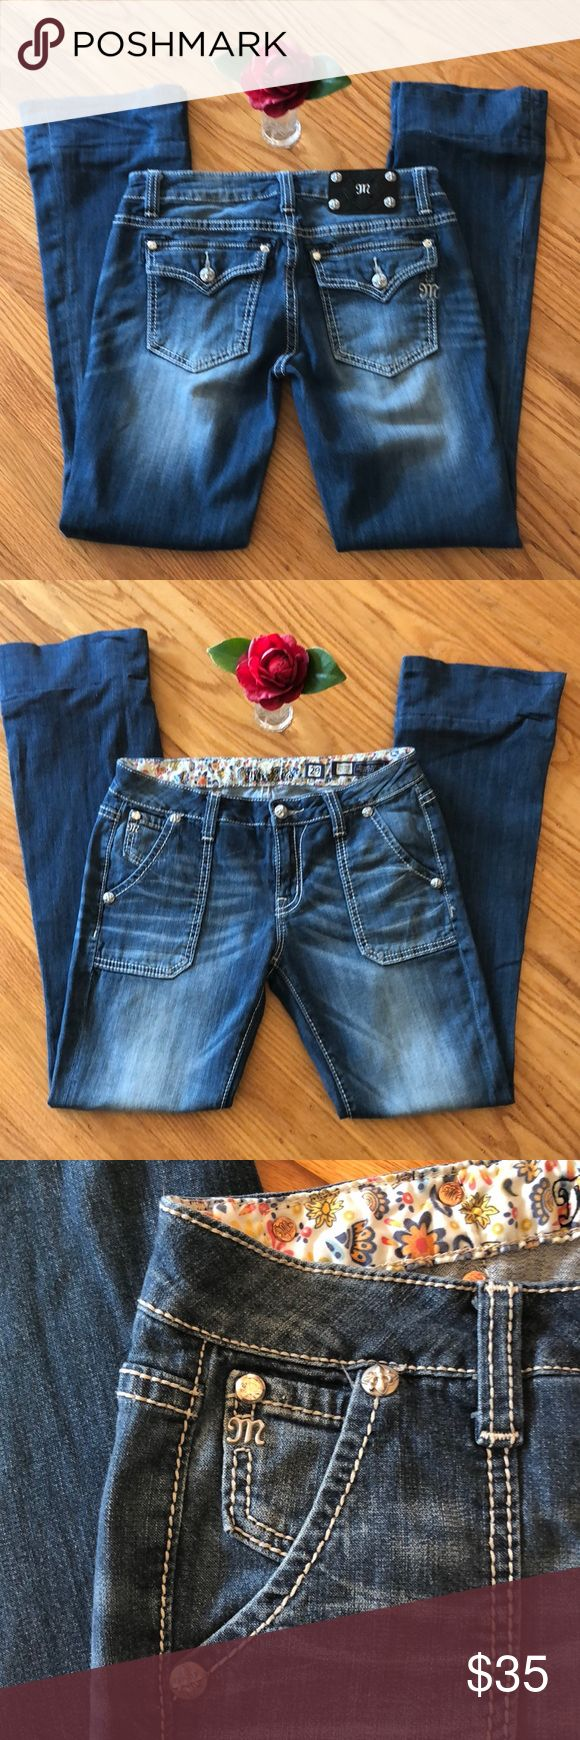 "🌺 Miss Me - Flare Blue Jeans Misses W28/L30 NICE! On-Trend, MISS ME - Flare Blue Jeans! Misses Waist Size 29"" with an Inseam of Approx. 30."" All Signature ""Miss Me"" Hardware intact. In good, pre-owned condition. Laundered and ready for you to wear 😊. Previous owner machine-hemmed these jeans (see last photo). Why pay high retail for the same pair of popular jeans? Thank you for shopping here. Please check out other high quality, Name Brand & ""fun finds"" in my closet. Bundle to save 💰. I…"